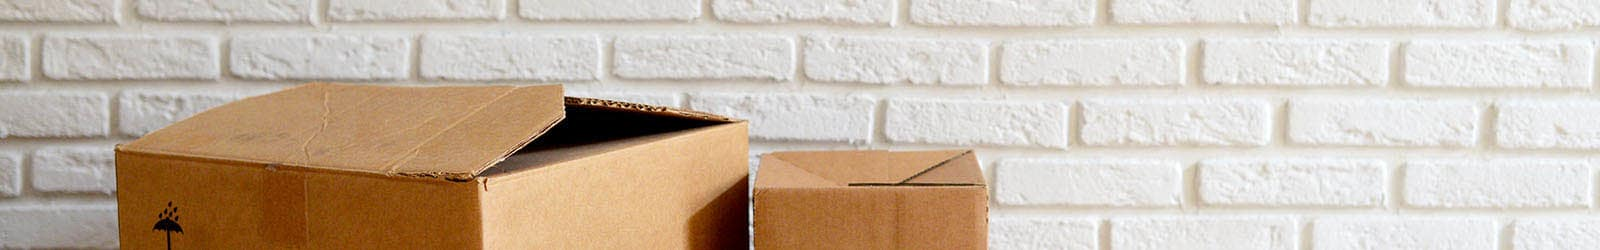 Boxes and packing supplies at Towne Storage - Urban Edge